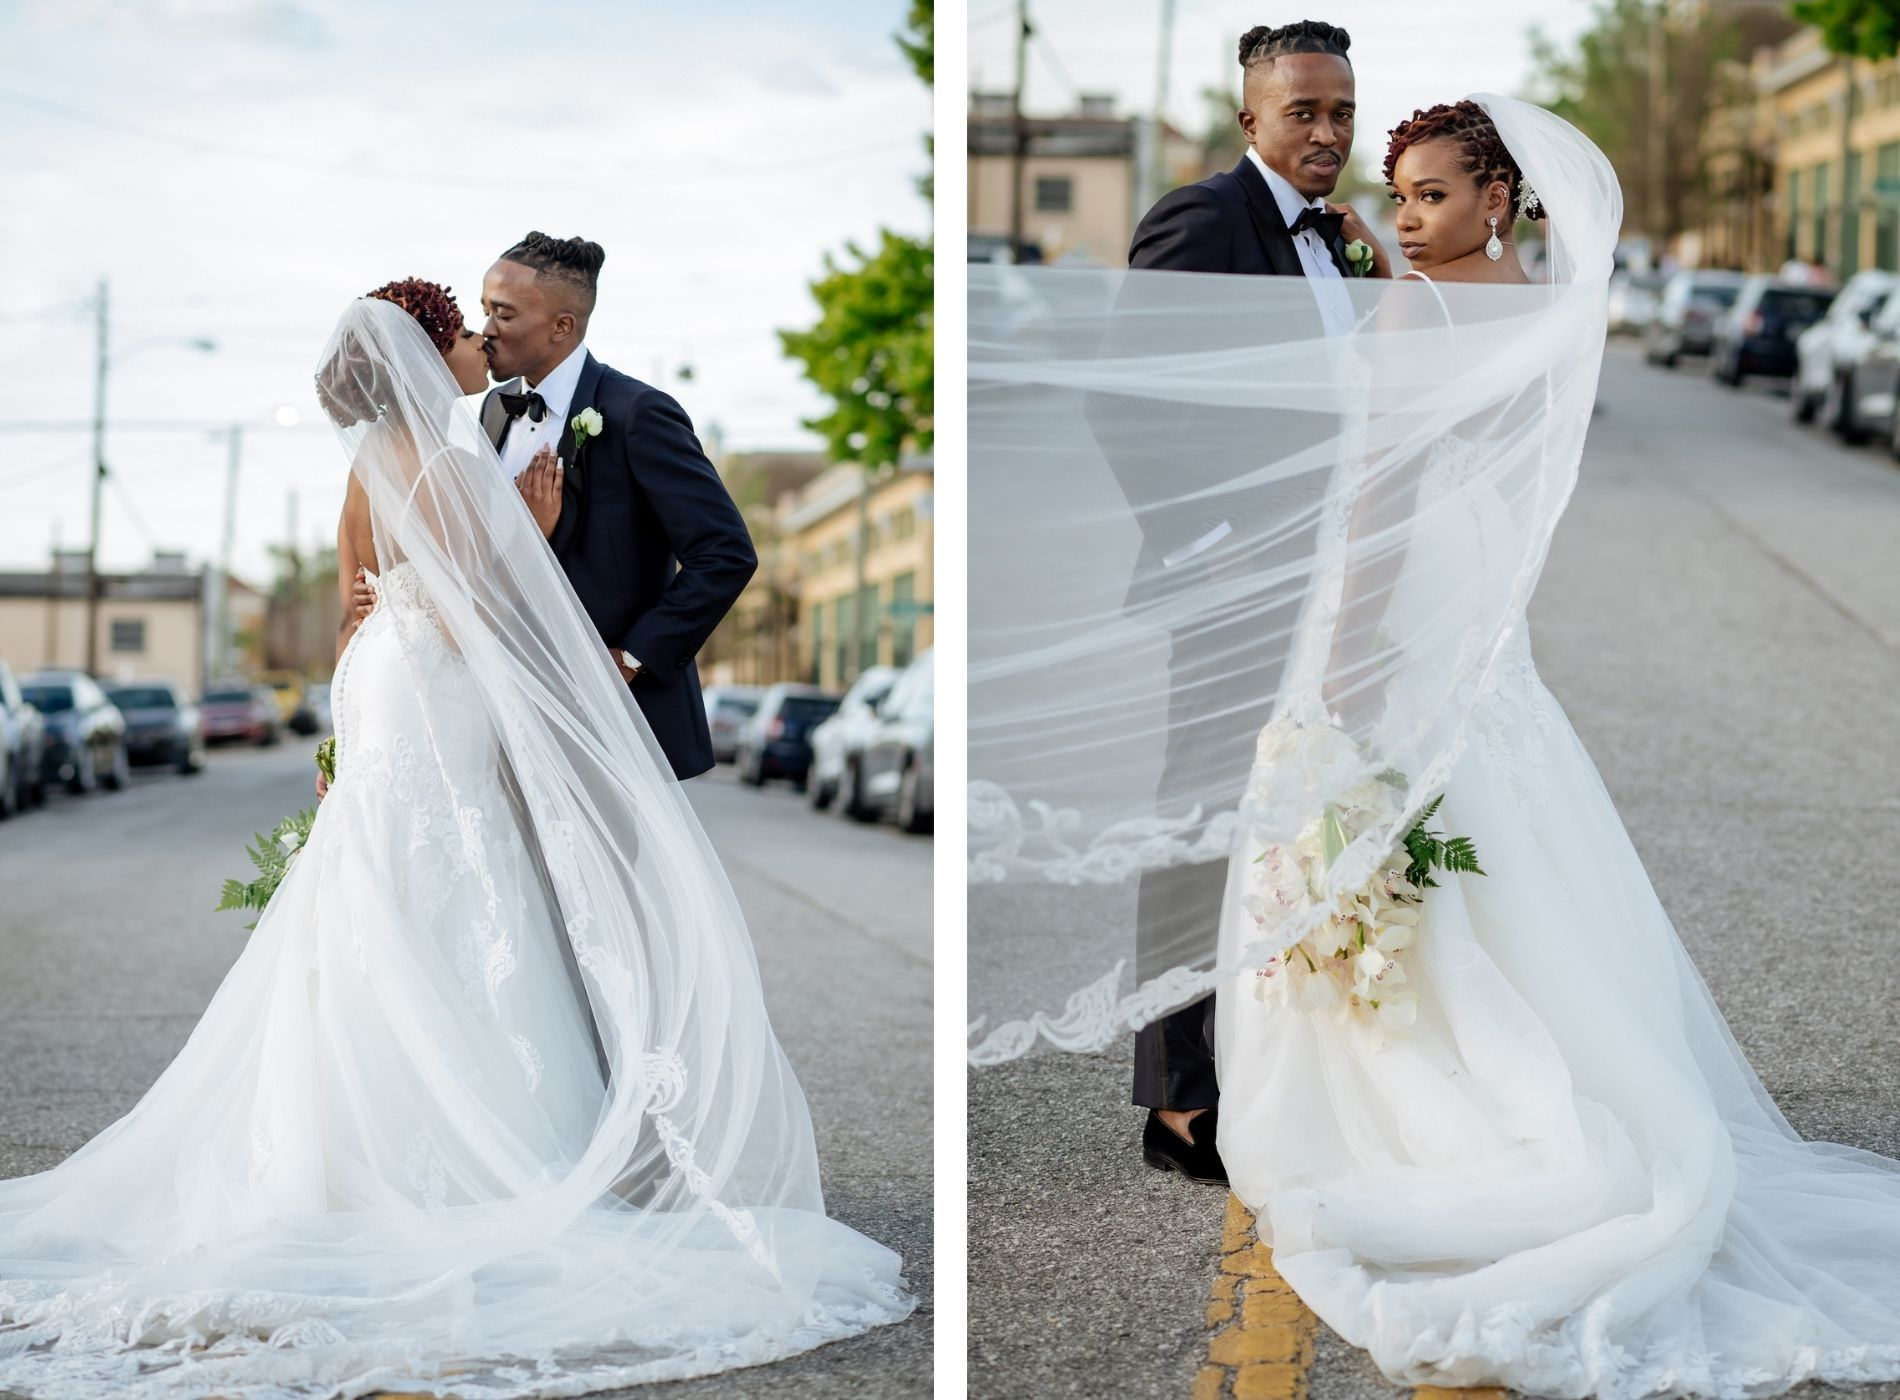 Outdoor Tampa Heights Bride and Groom Portrait   Ivory Spaghetti Strap Scoop Back Lace and Tulle Mermaid Martina Liana Wedding Dress Bridal Gown and Cathedral Veil   Groom in Modern Navy Suit with Black Satin Lapel and Bow Tie   White Arm Sheaf Wedding Bride Bouquet with Hydrangea and Orchids   Wedding Photography Veil Shot